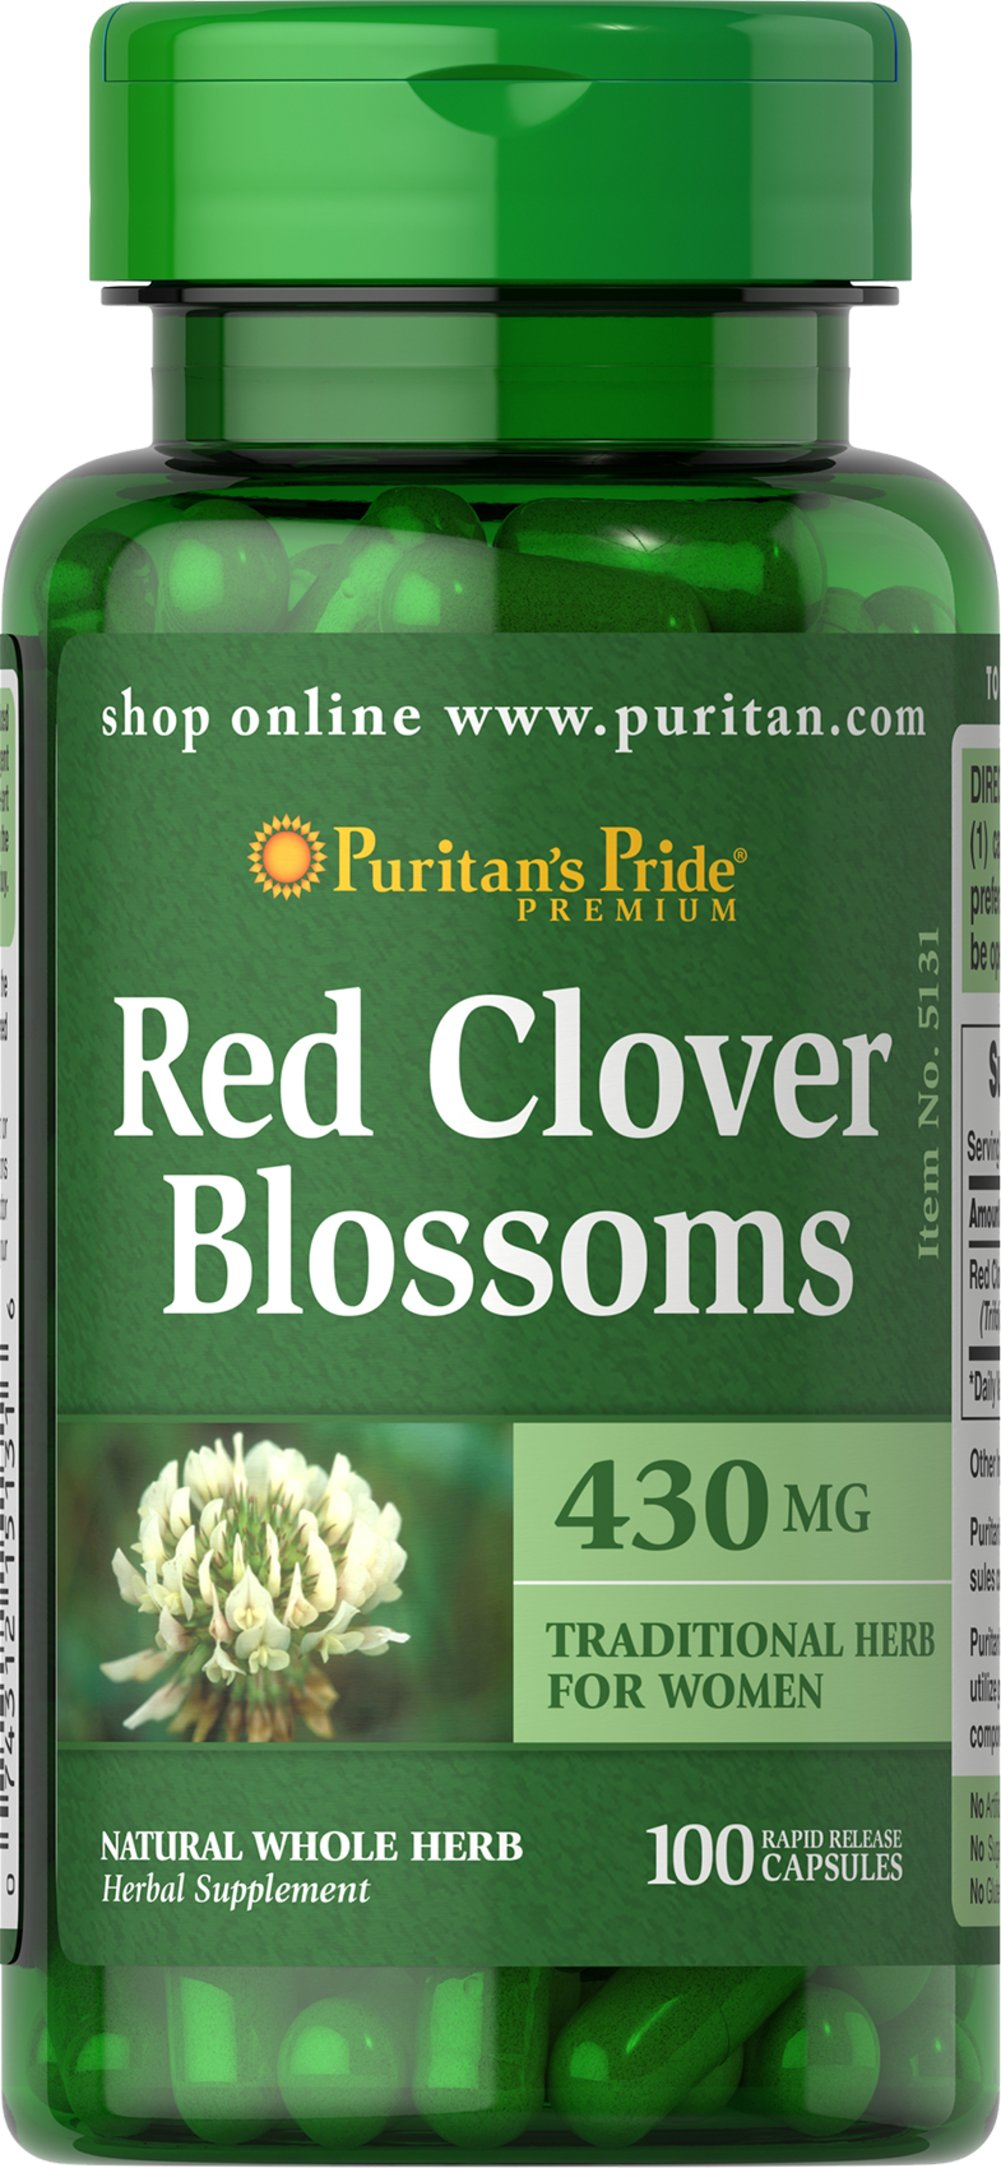 Red Clover Blossoms 430 mg  100 Capsules 430 mg $11.99